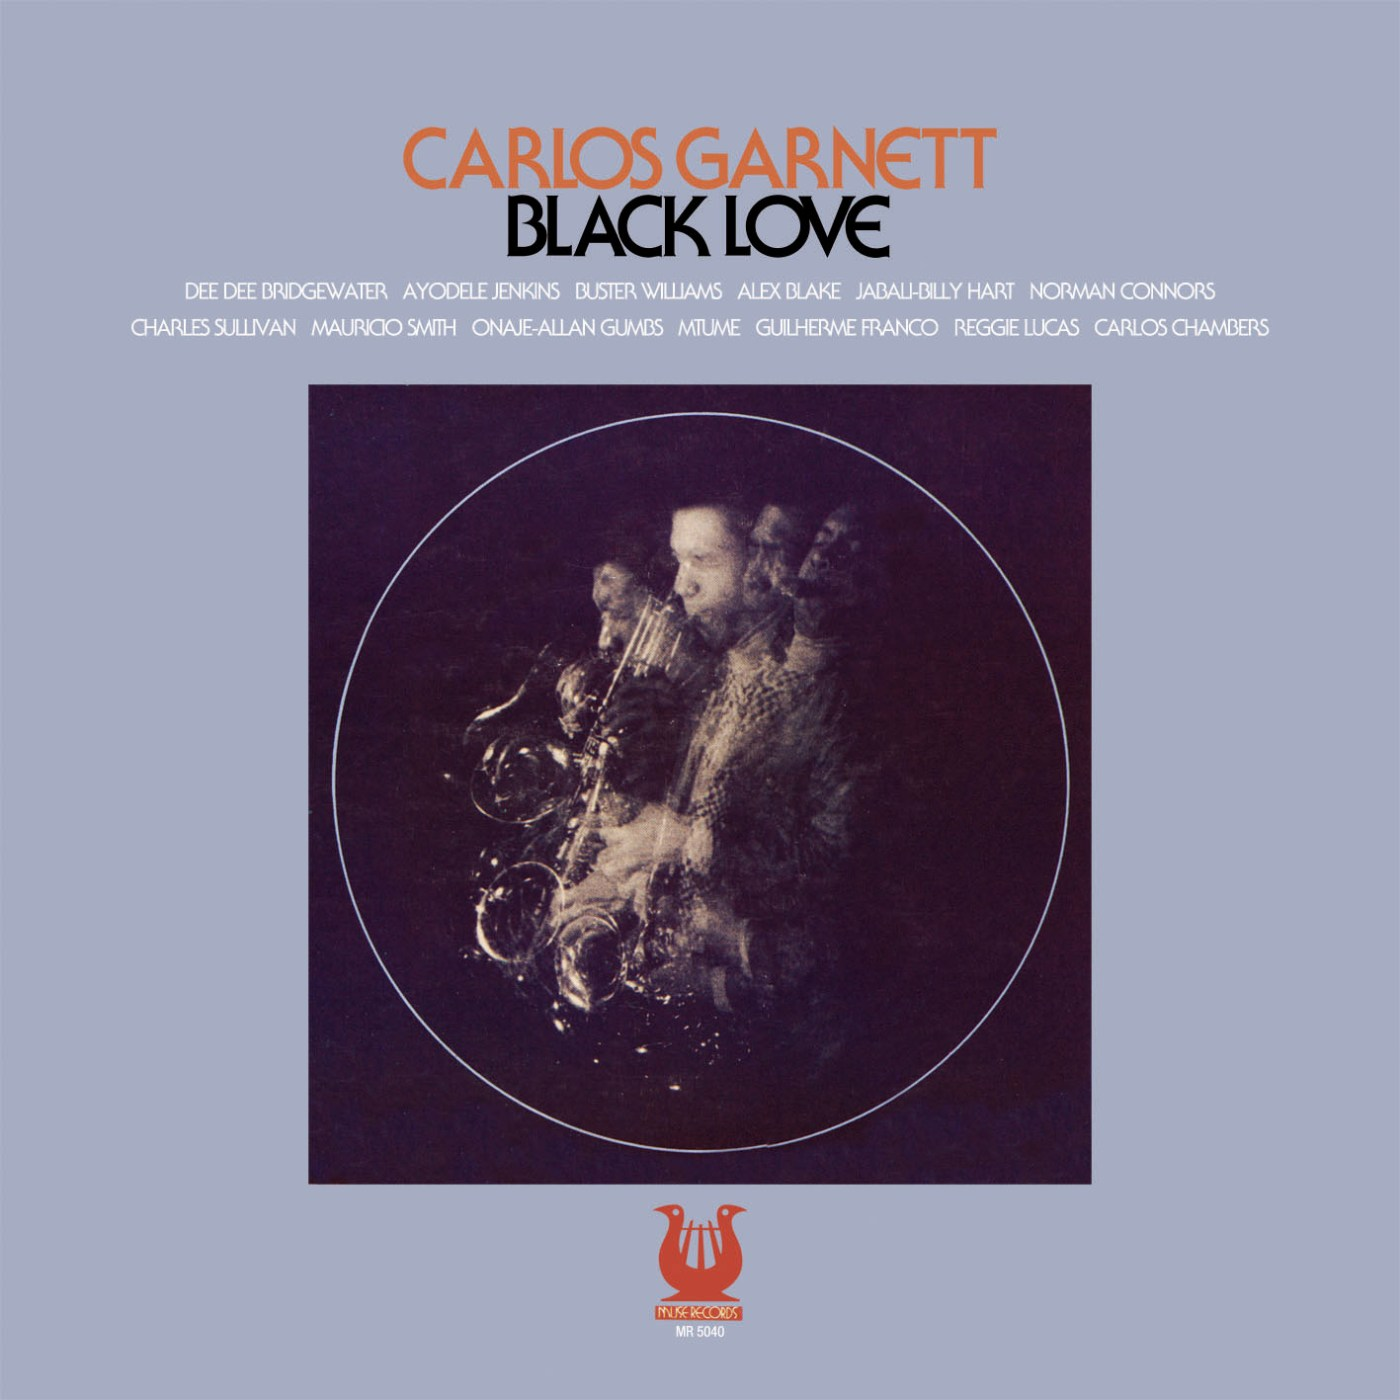 Carlos Garnett/BLACK LOVE CD